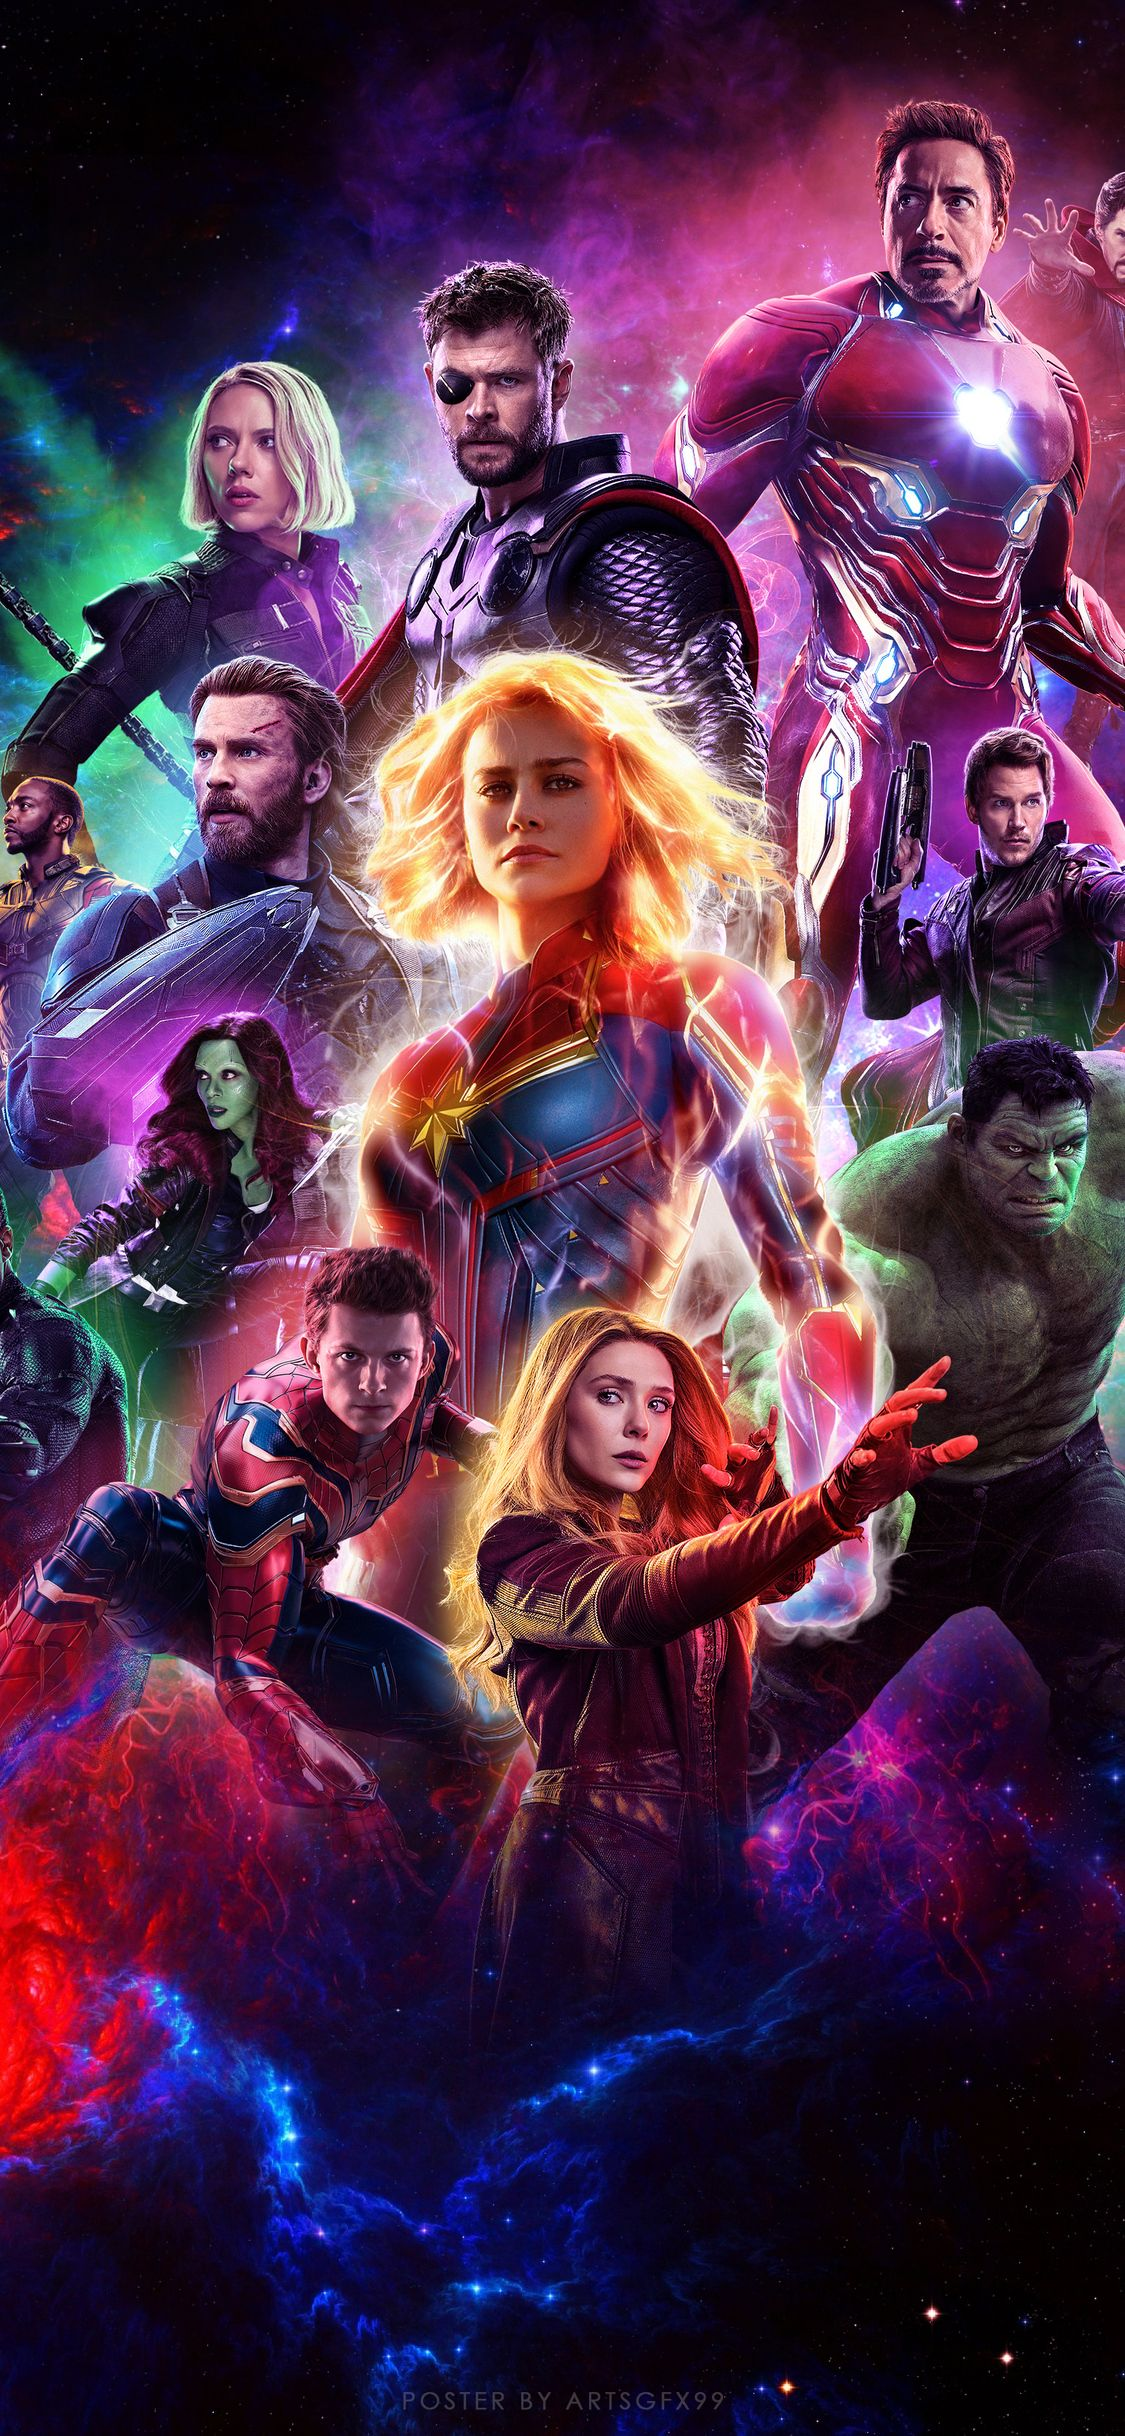 1125x2436 Avengers Endgame 2019 Iphone Xs Iphone 10 Iphone X Hd 4k Wallpapers Images Backgrounds Photos An Avengers Movies Marvel Superheroes Marvel Posters